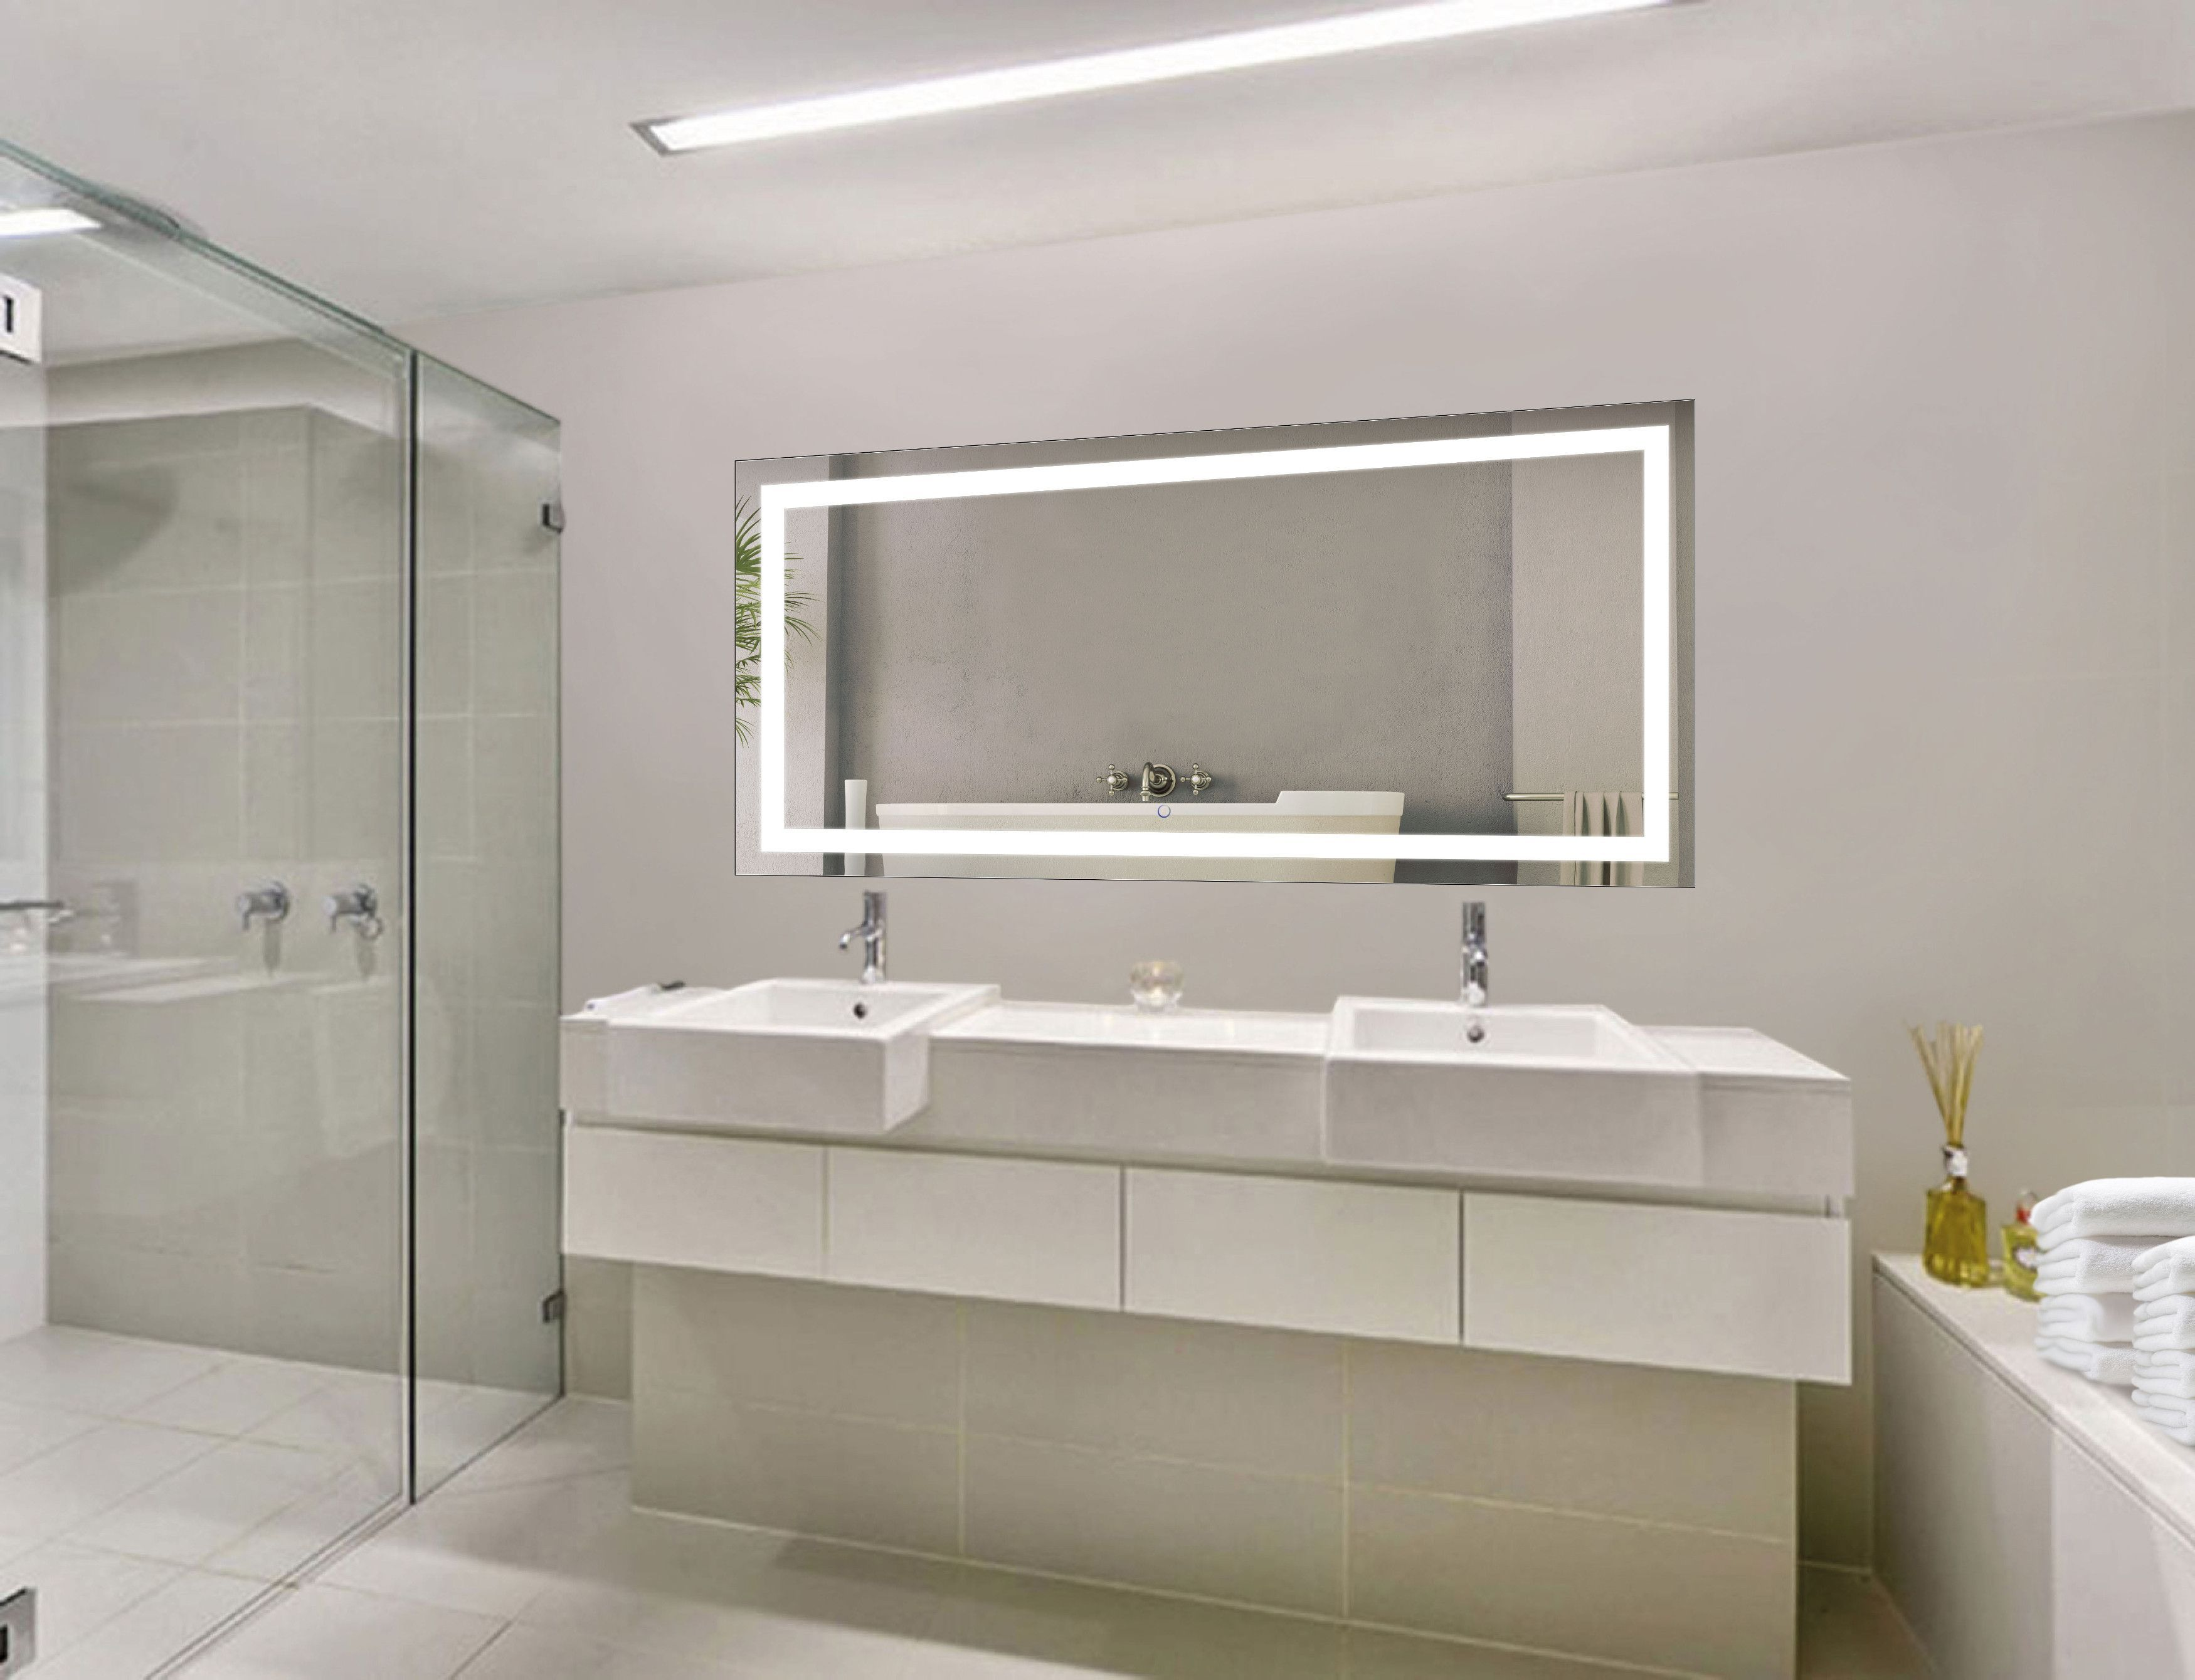 Design your bathroom around the commanding focal point of the icon